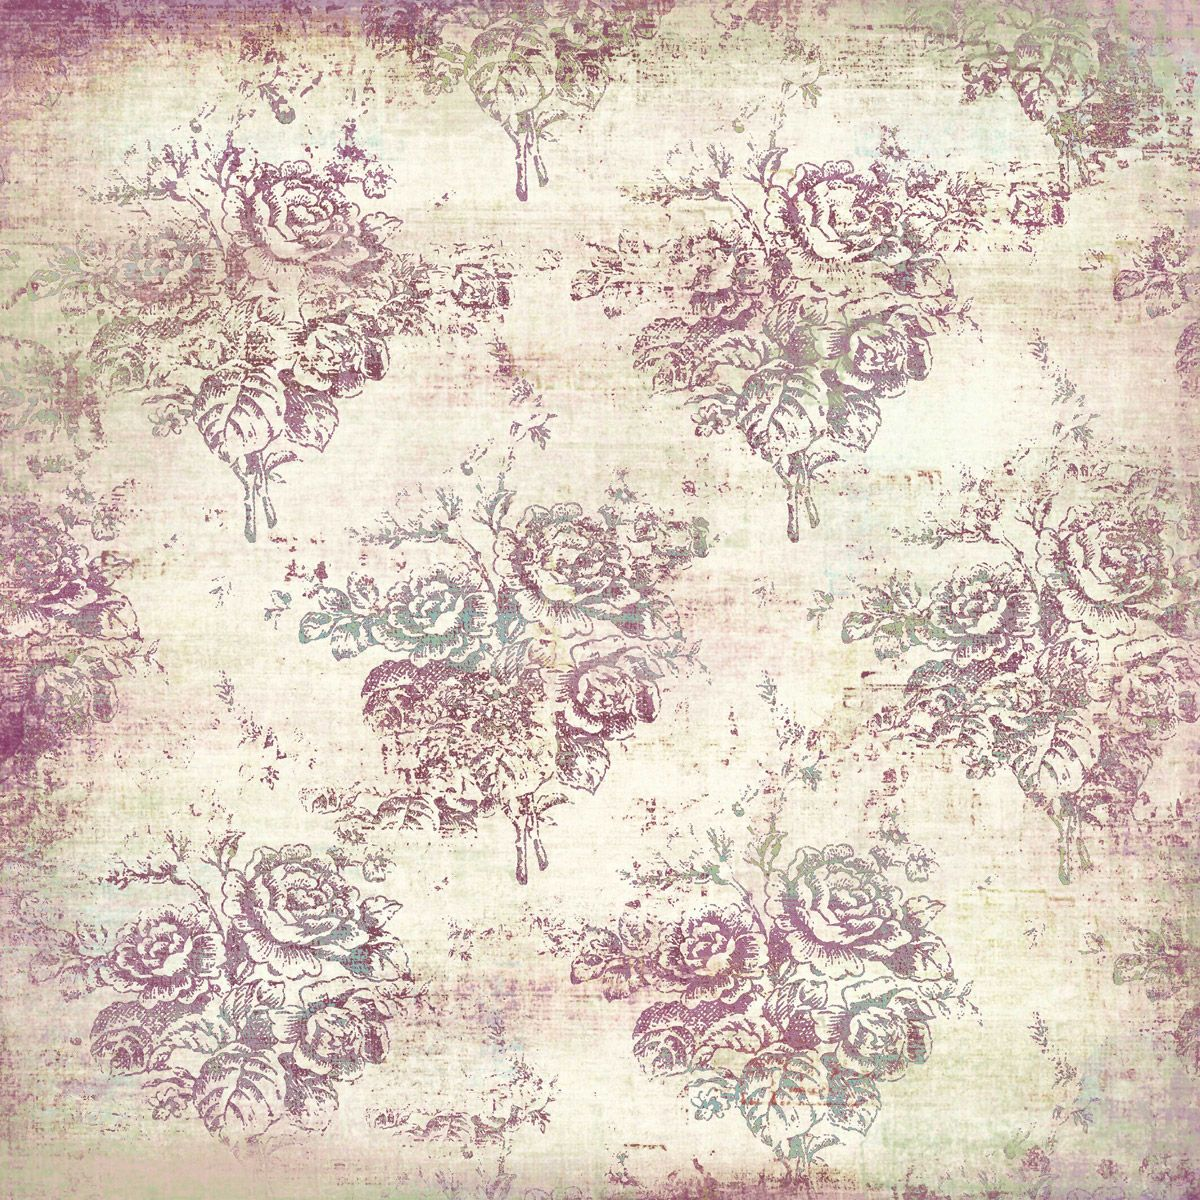 Michael S Scrapbook Paper Steampunk Paper Crafts Digital